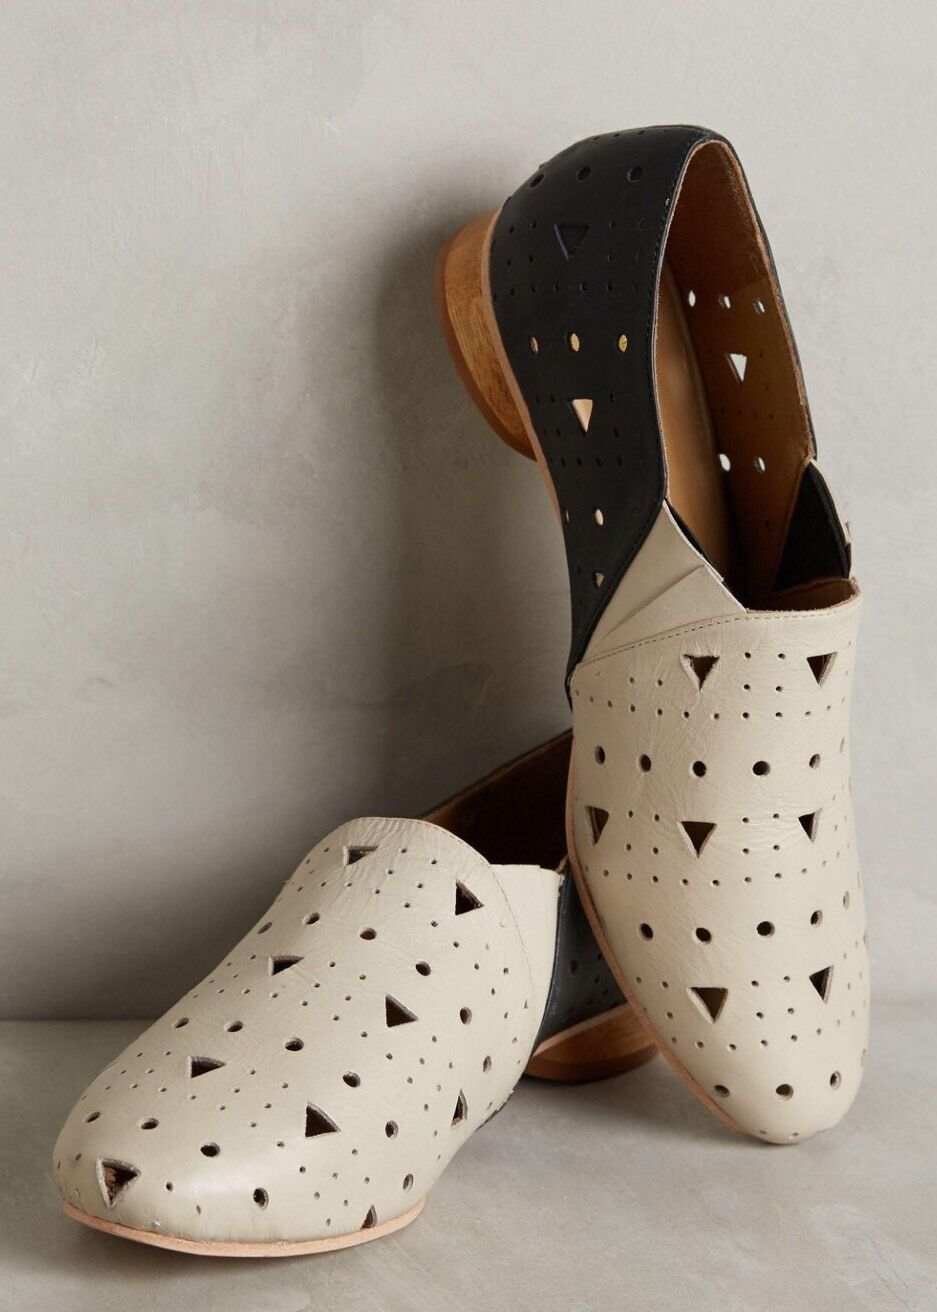 vendita all'ingrosso NEW Nina Payne Marlowe Perforated Loafers Dimensione 38 Art Deco Deco Deco Flats  garantito